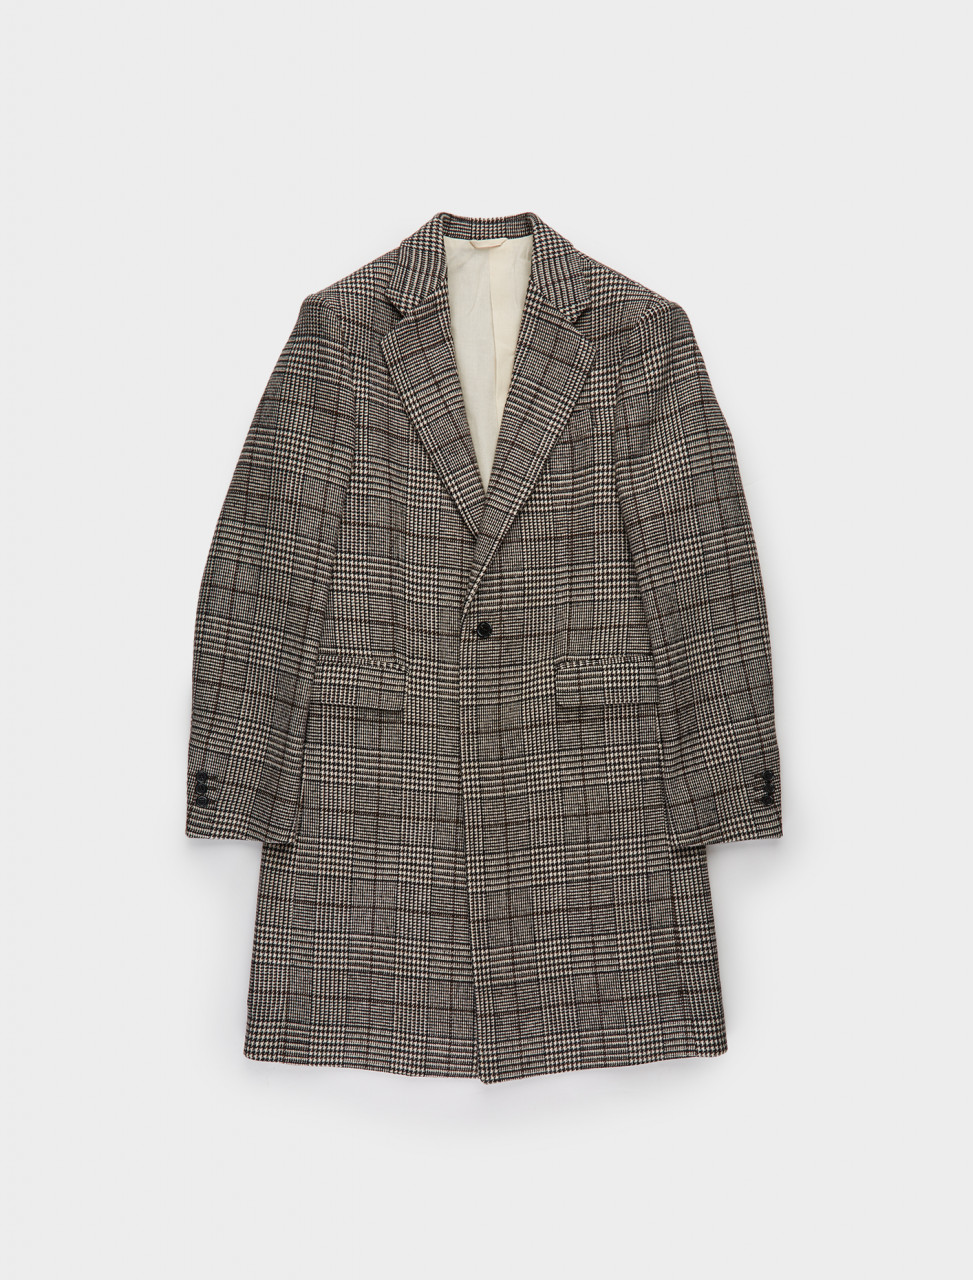 162-202-610-25008-09913 RAF SIMONS Slim Fit Single Breasted Coat